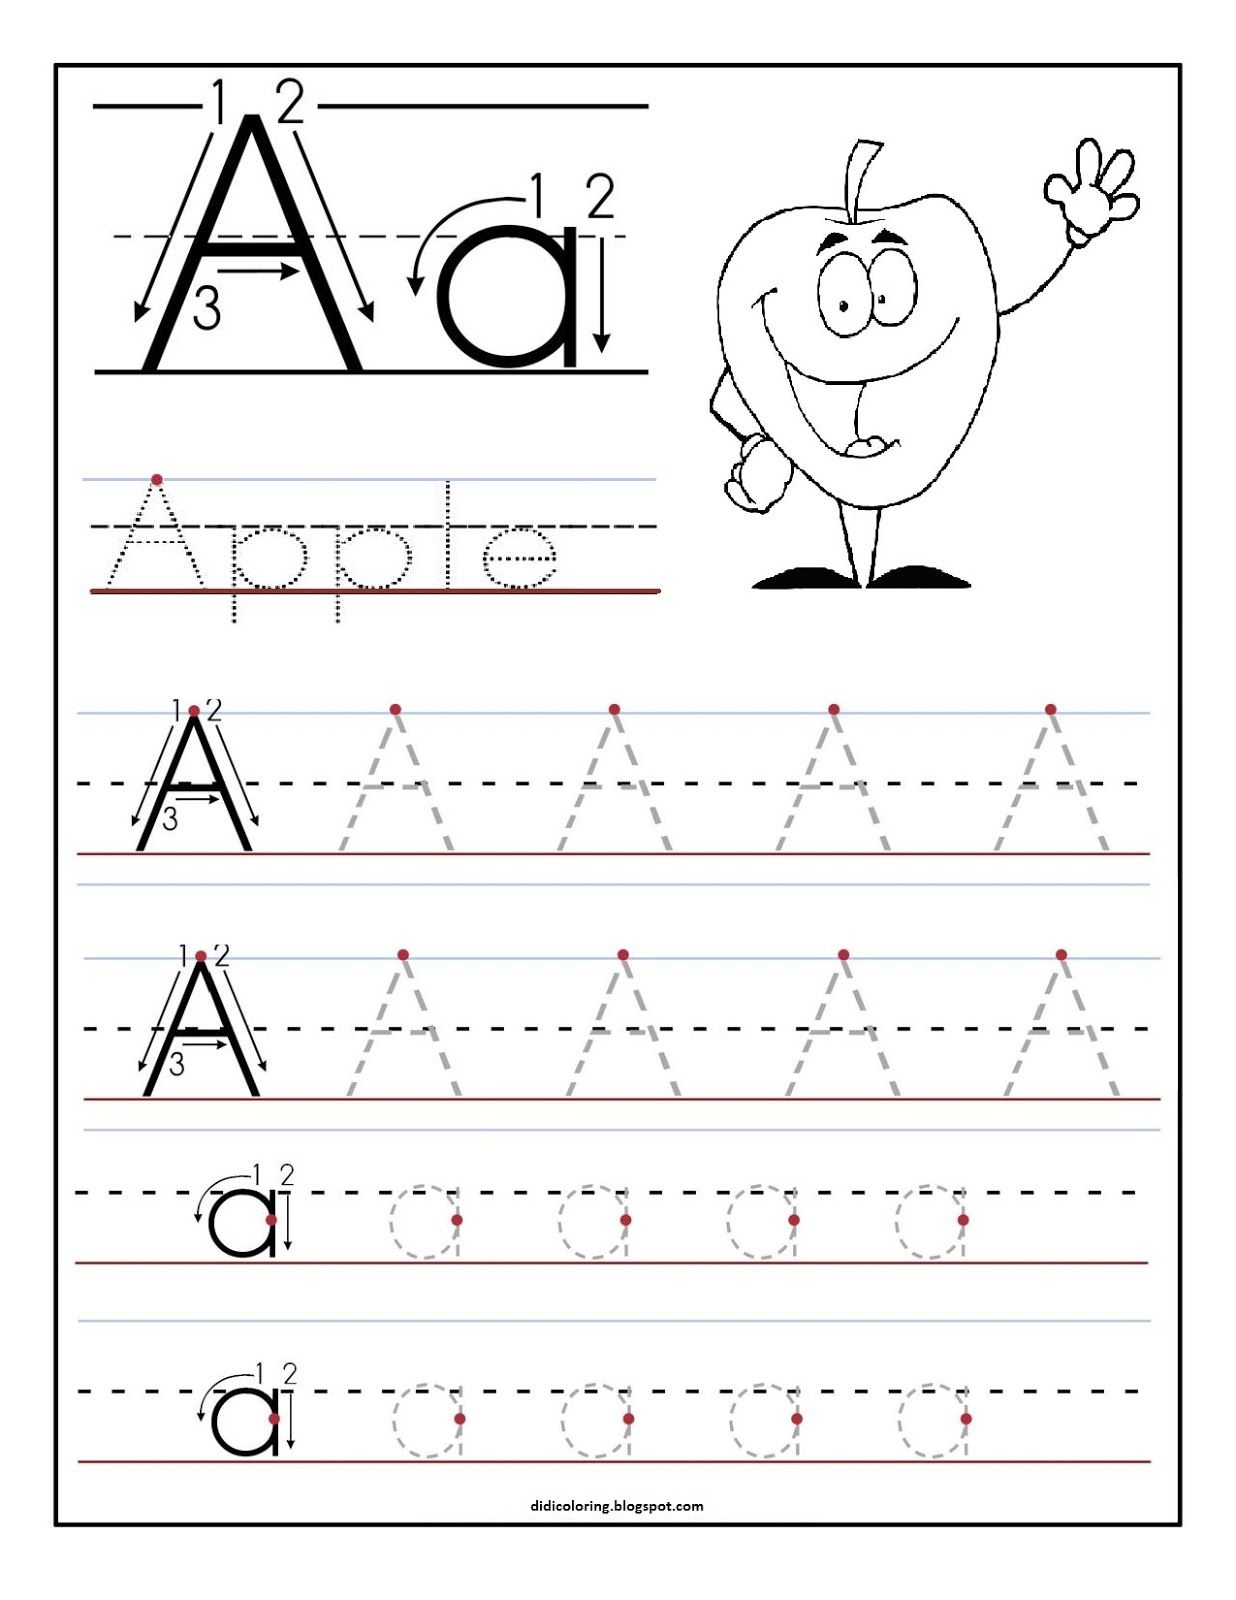 Free Printable Worksheet Letter A For Your Child To Learn And Write | Learn Your Letters Printable Worksheets